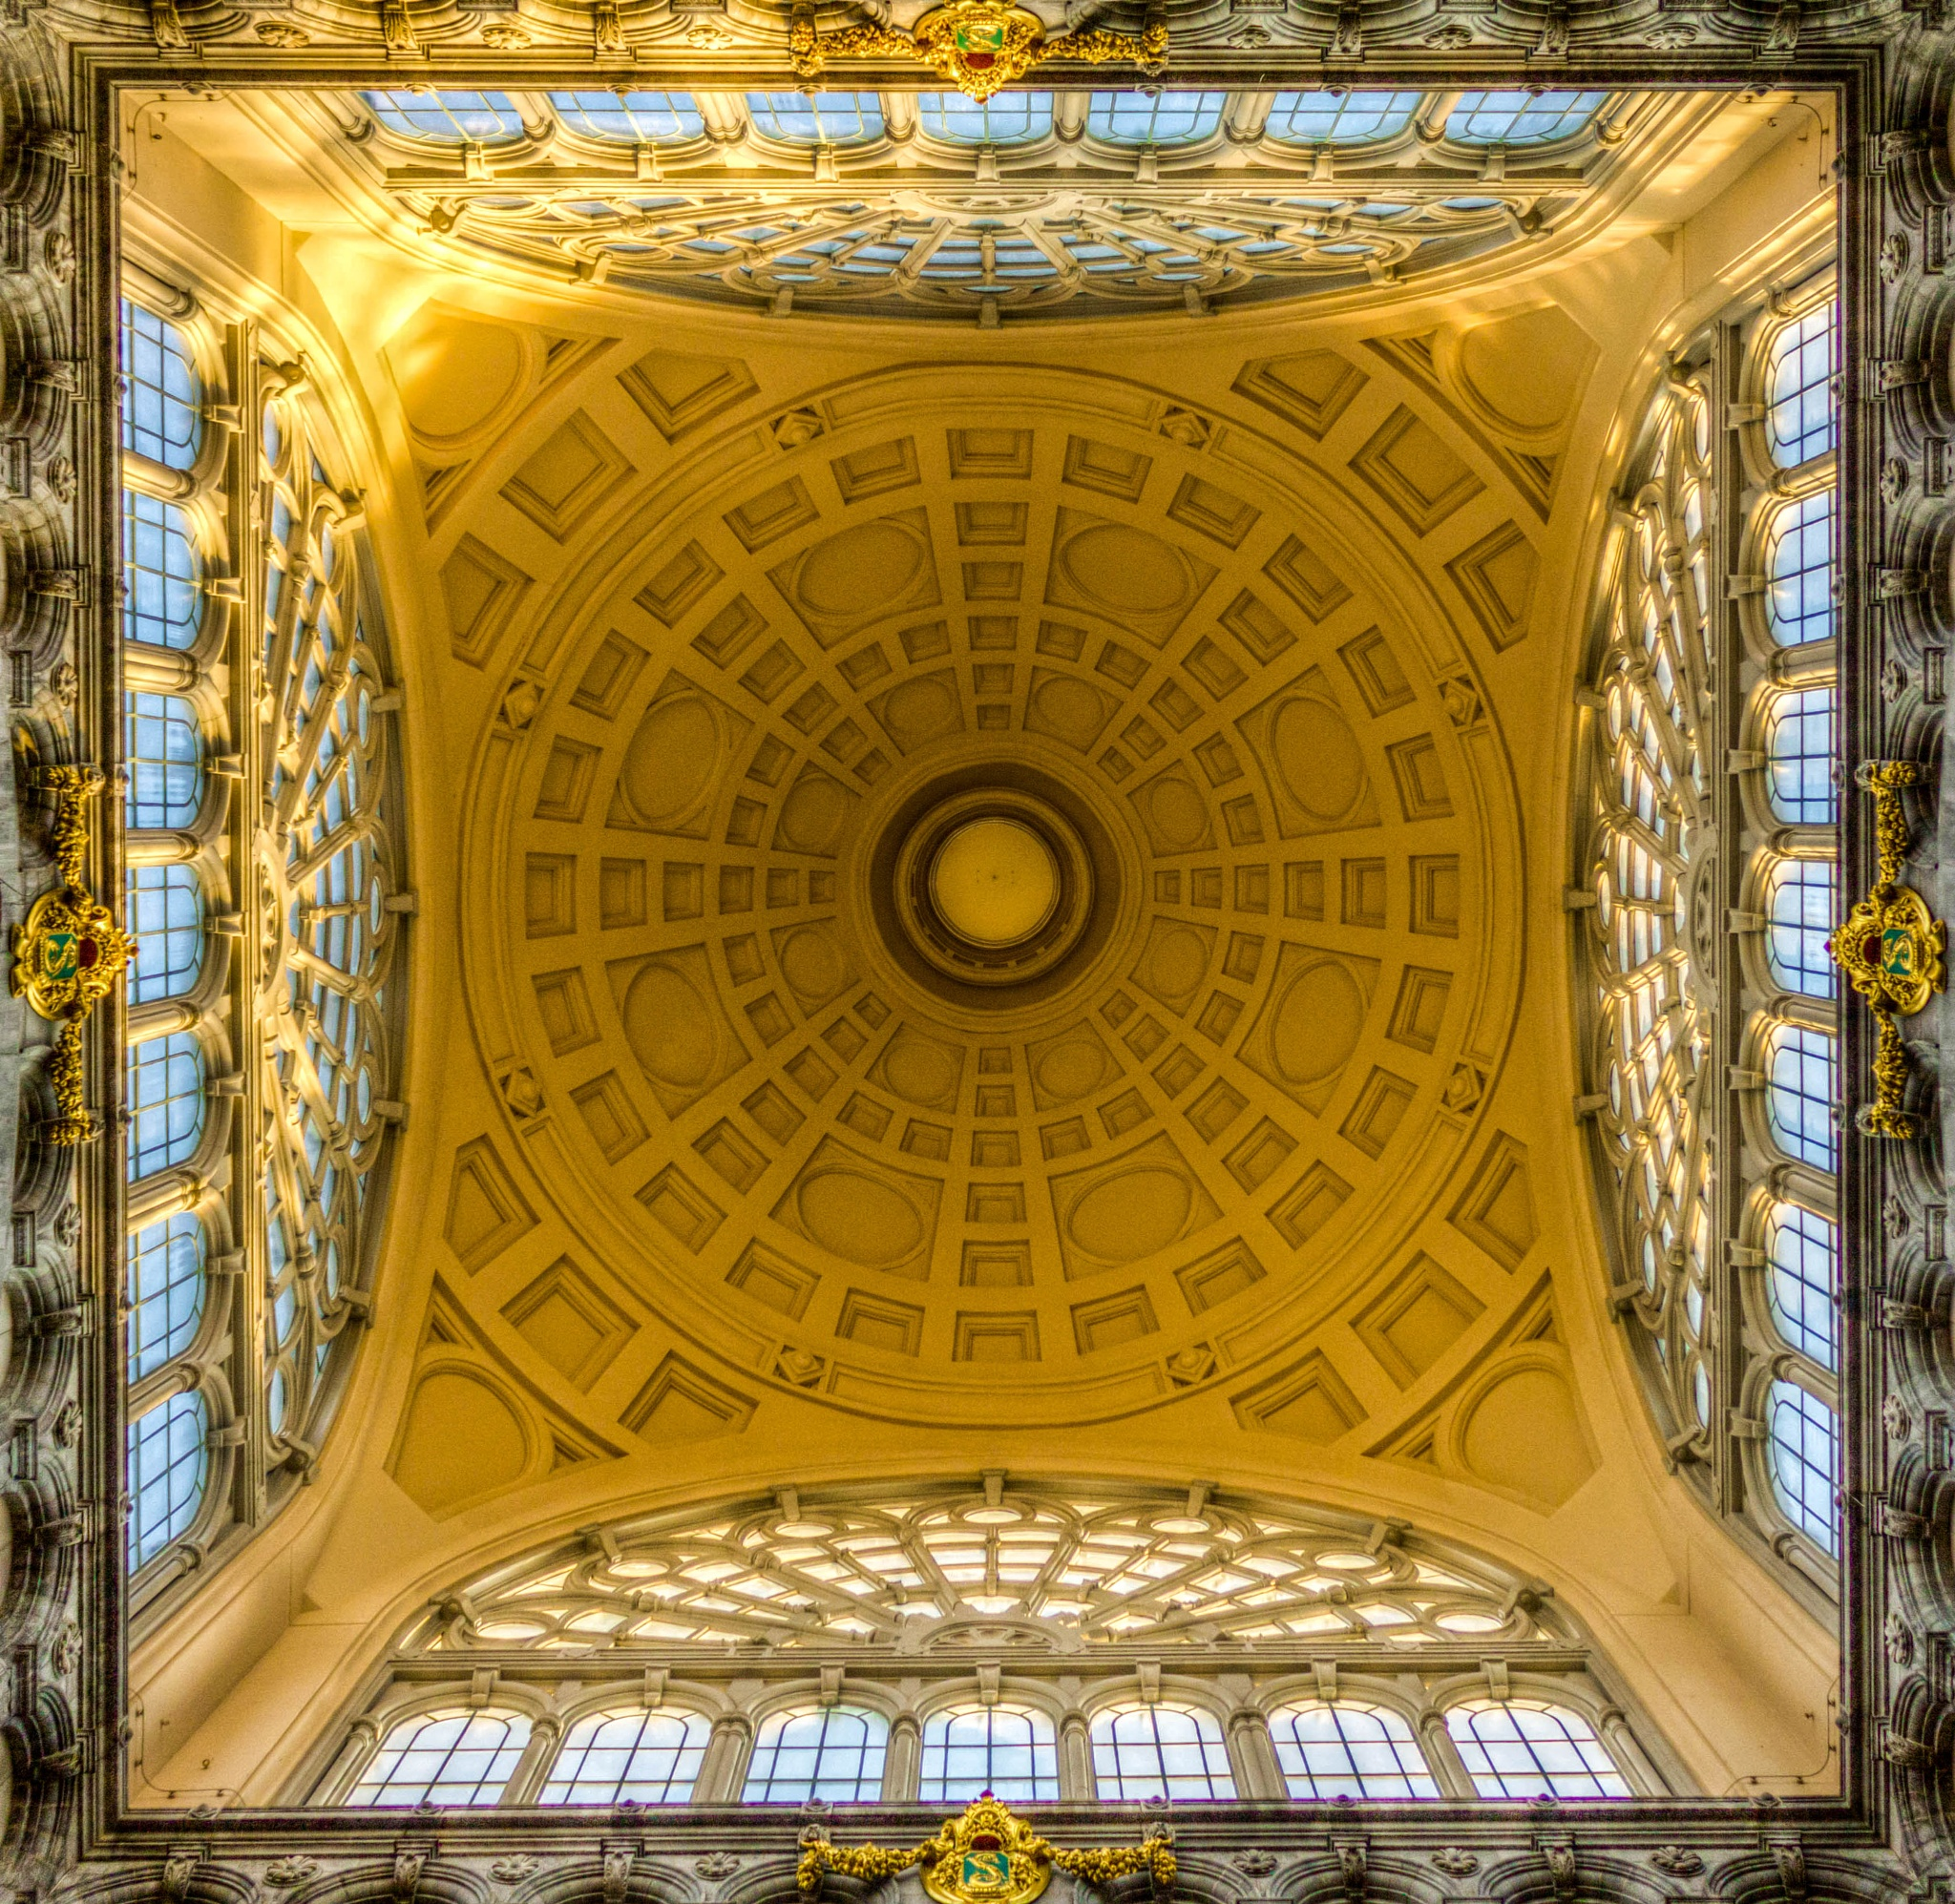 Ceiling of Antwerp cetral station by Kashif Yusufzai